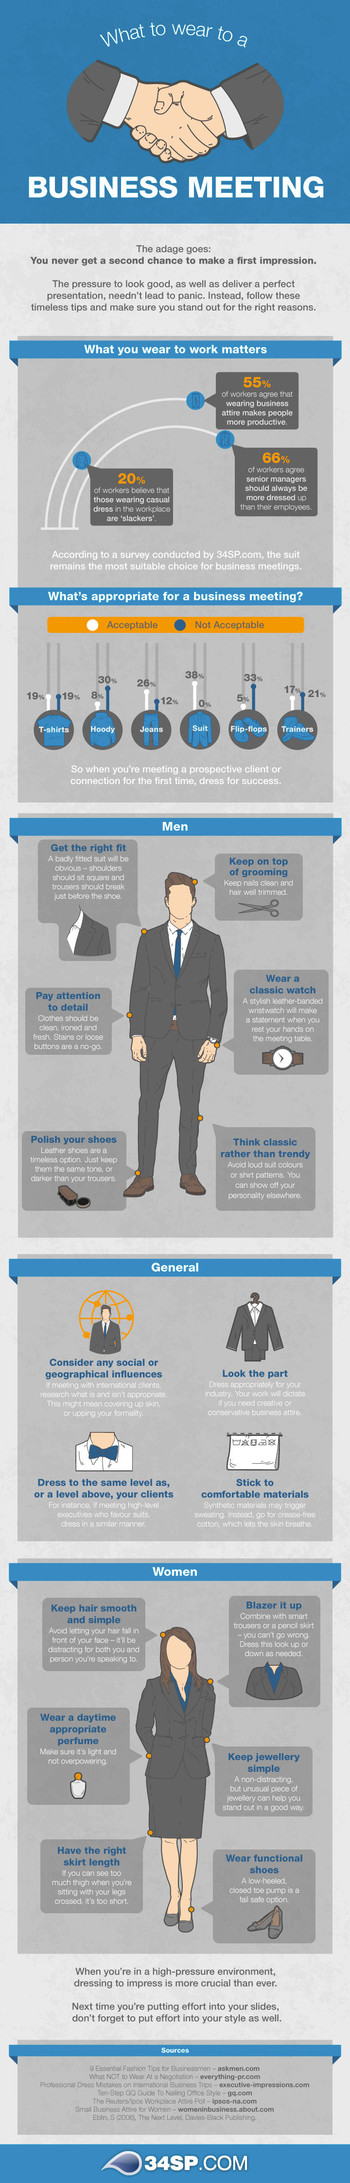 How to Dress for a Business Meeting.